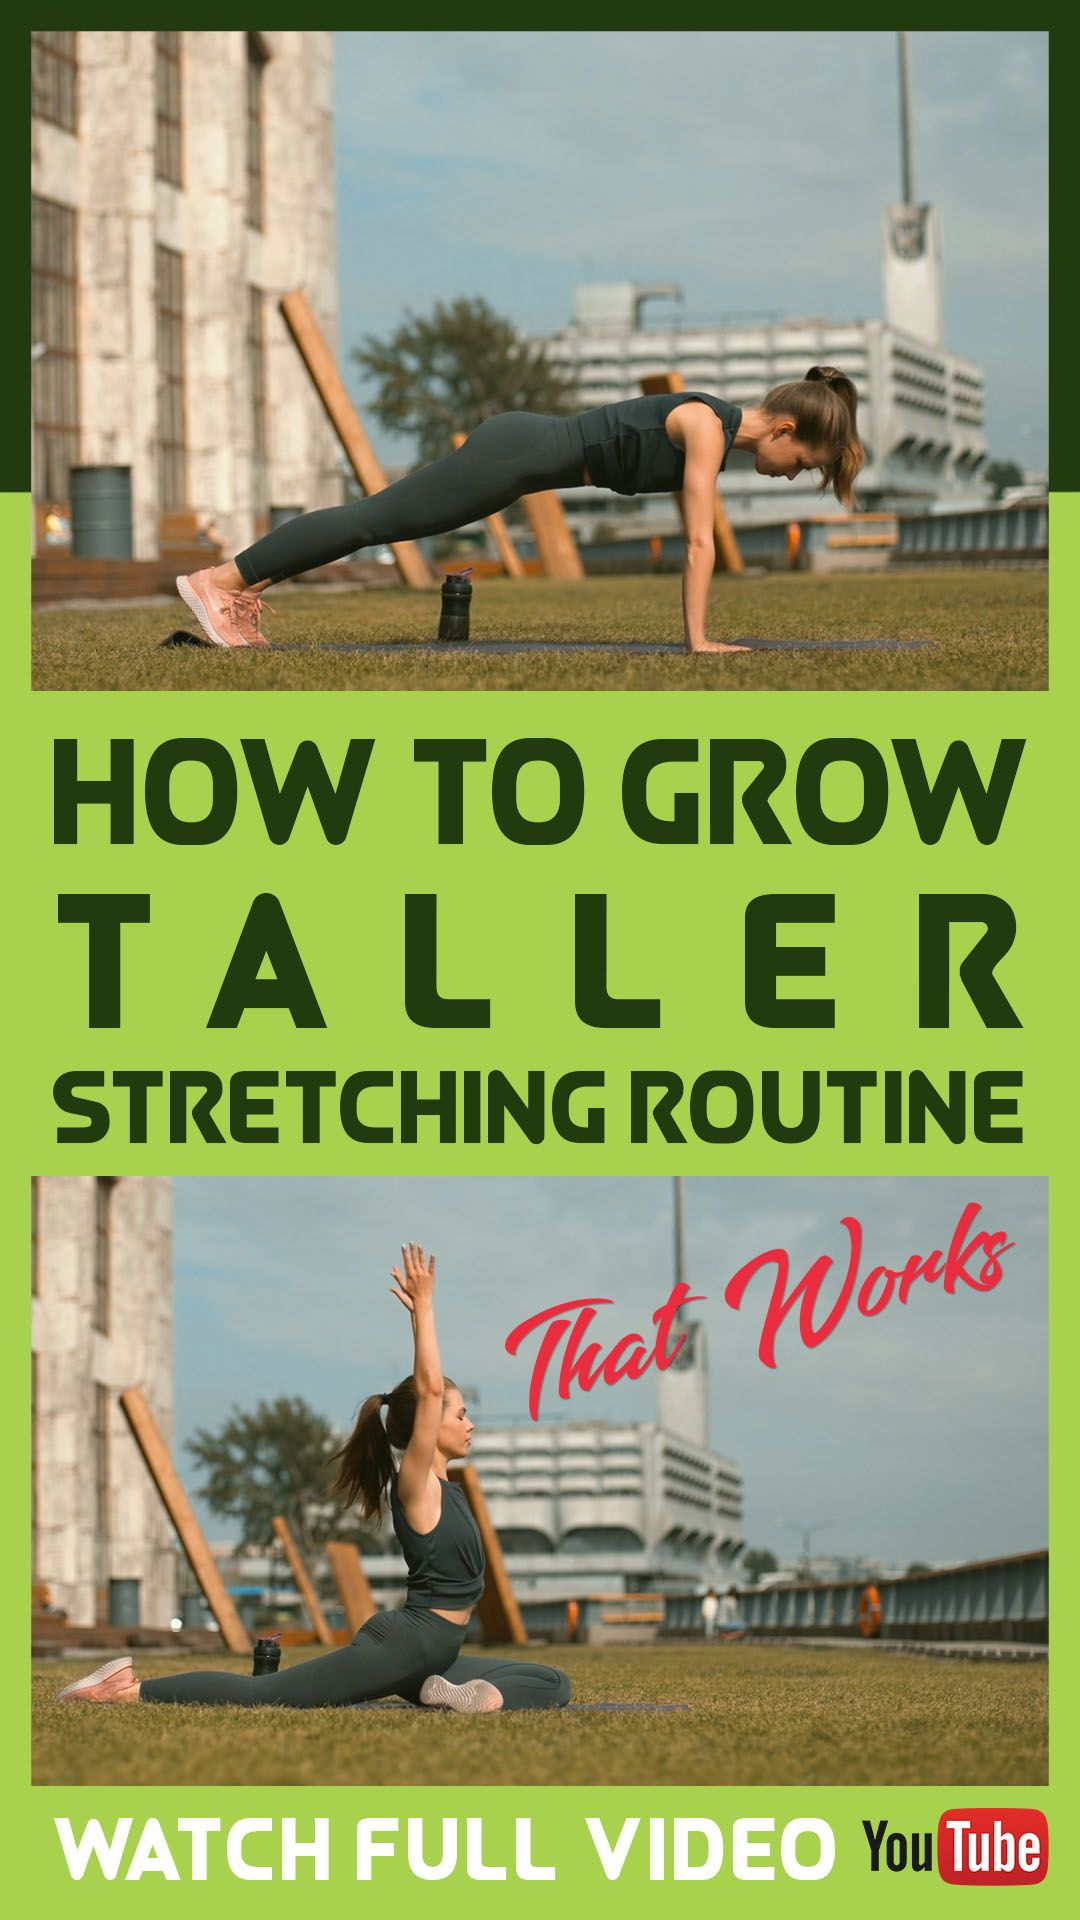 How To Grow Taller   Stretching Routine That Works